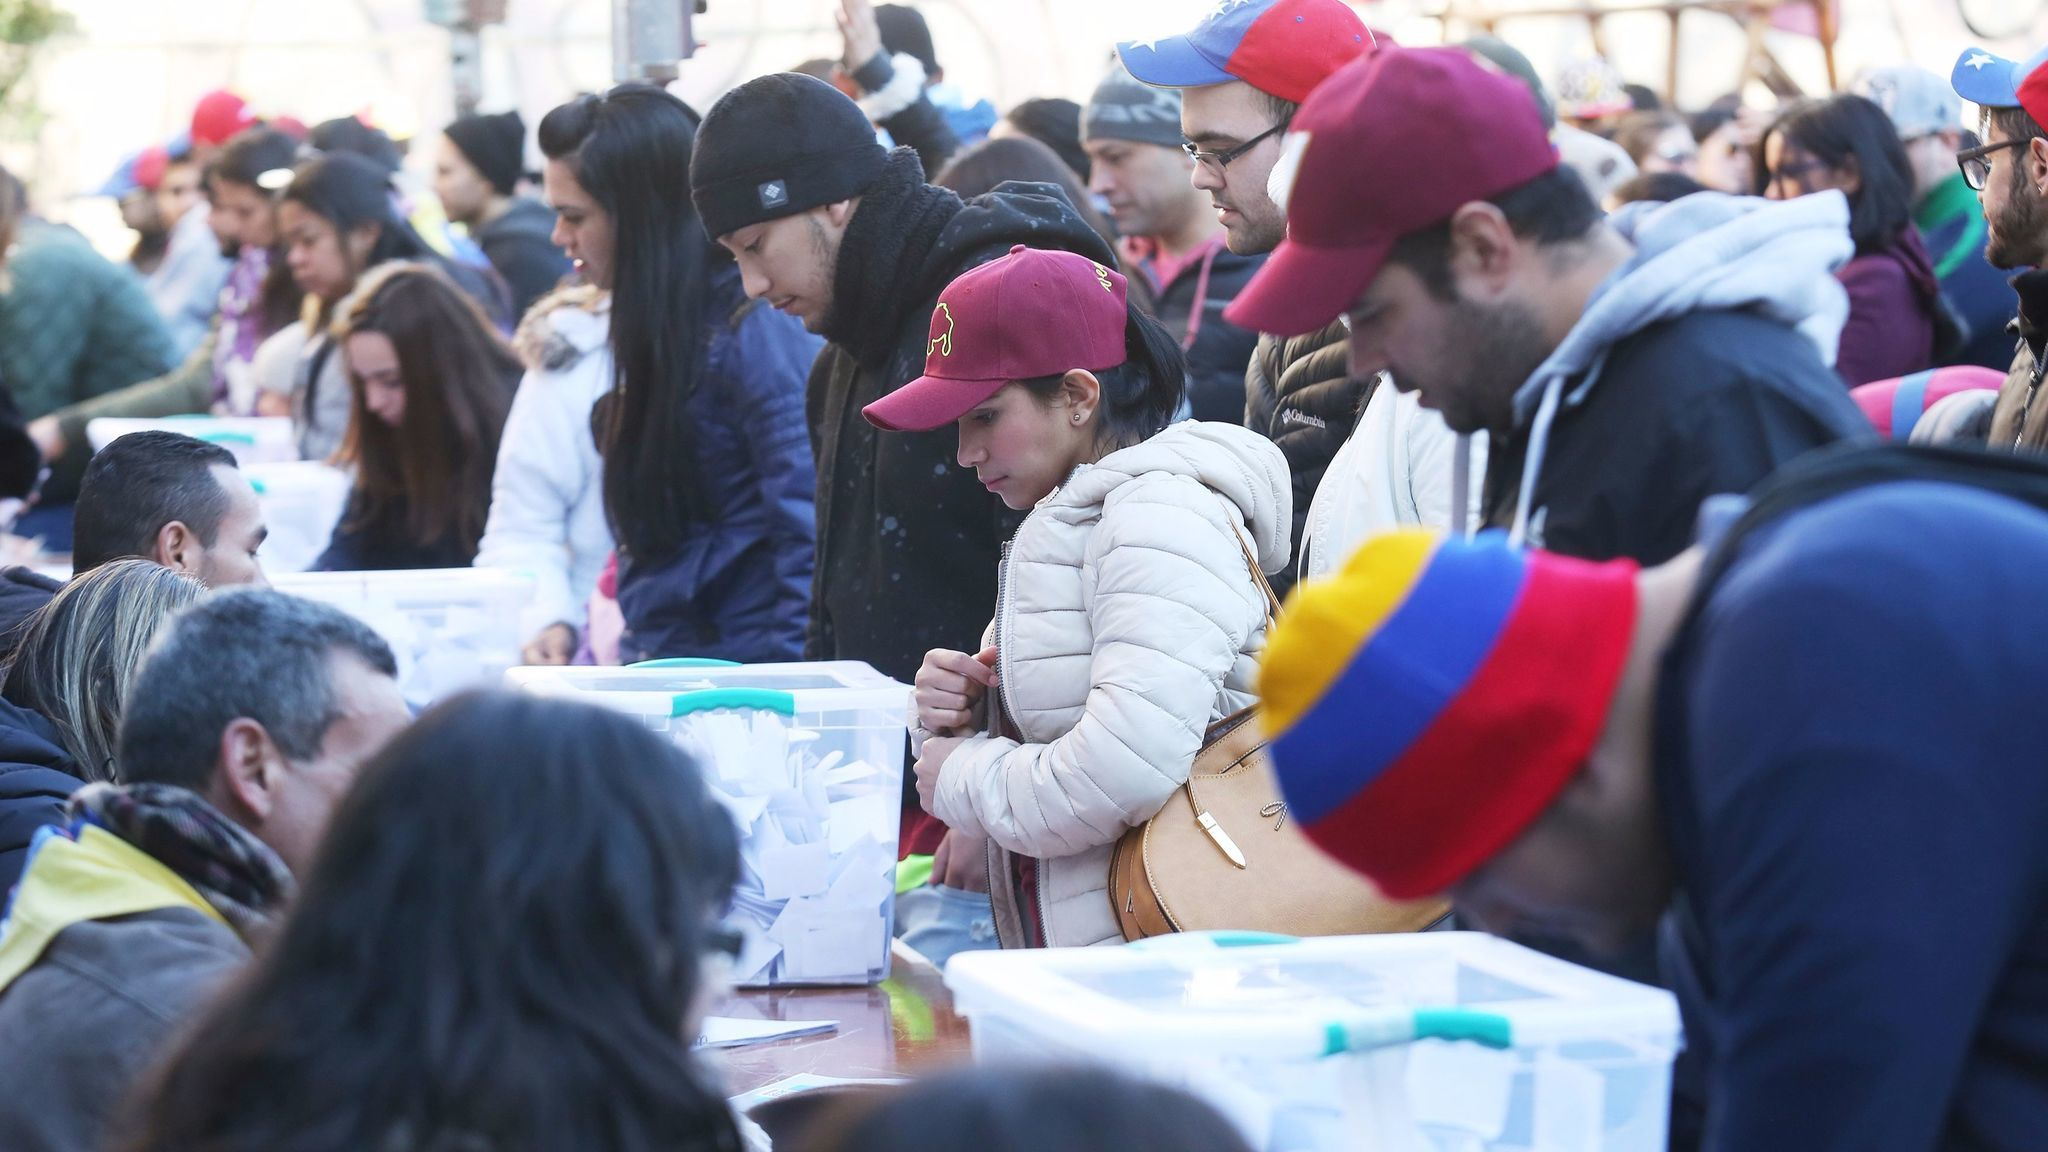 Venezuelans in Santiago, Chile, assembled in July to vote on an unofficial referendum to express their views on a plan by President Nicolas Maduro to rewrite the Venezuelan constitution.